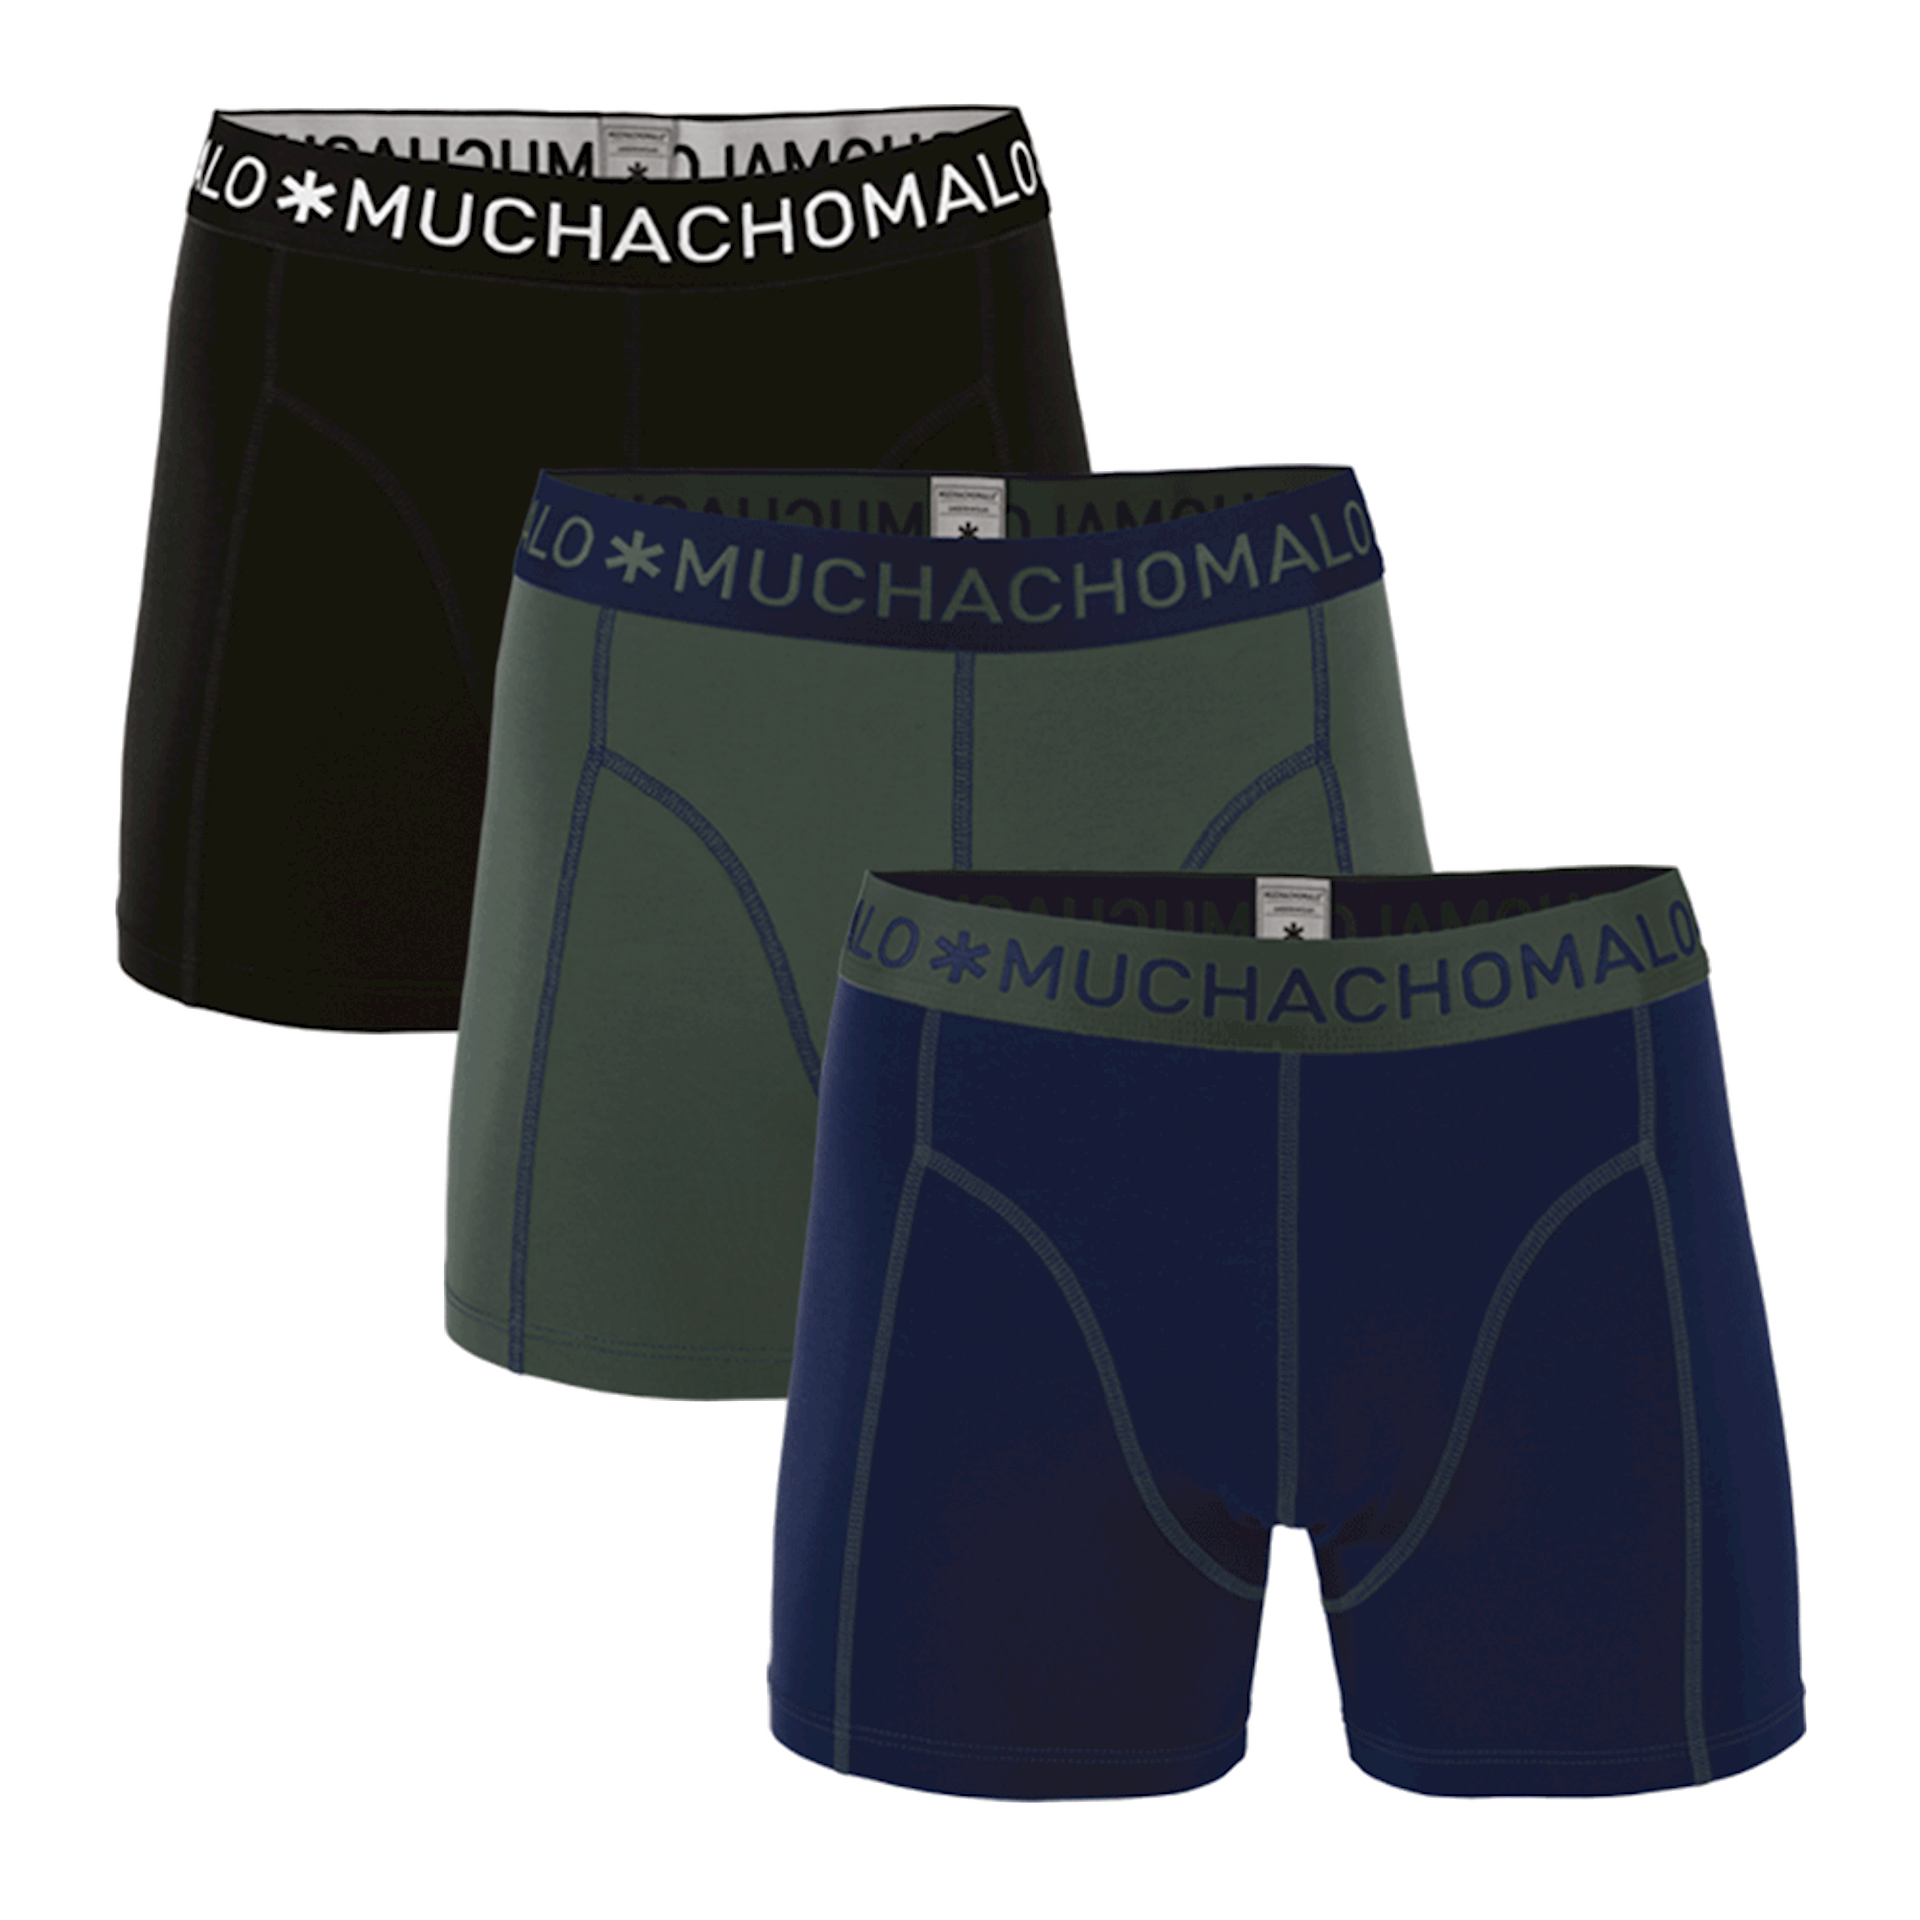 Muchachomalo Boxershorts Solid186 3 pack